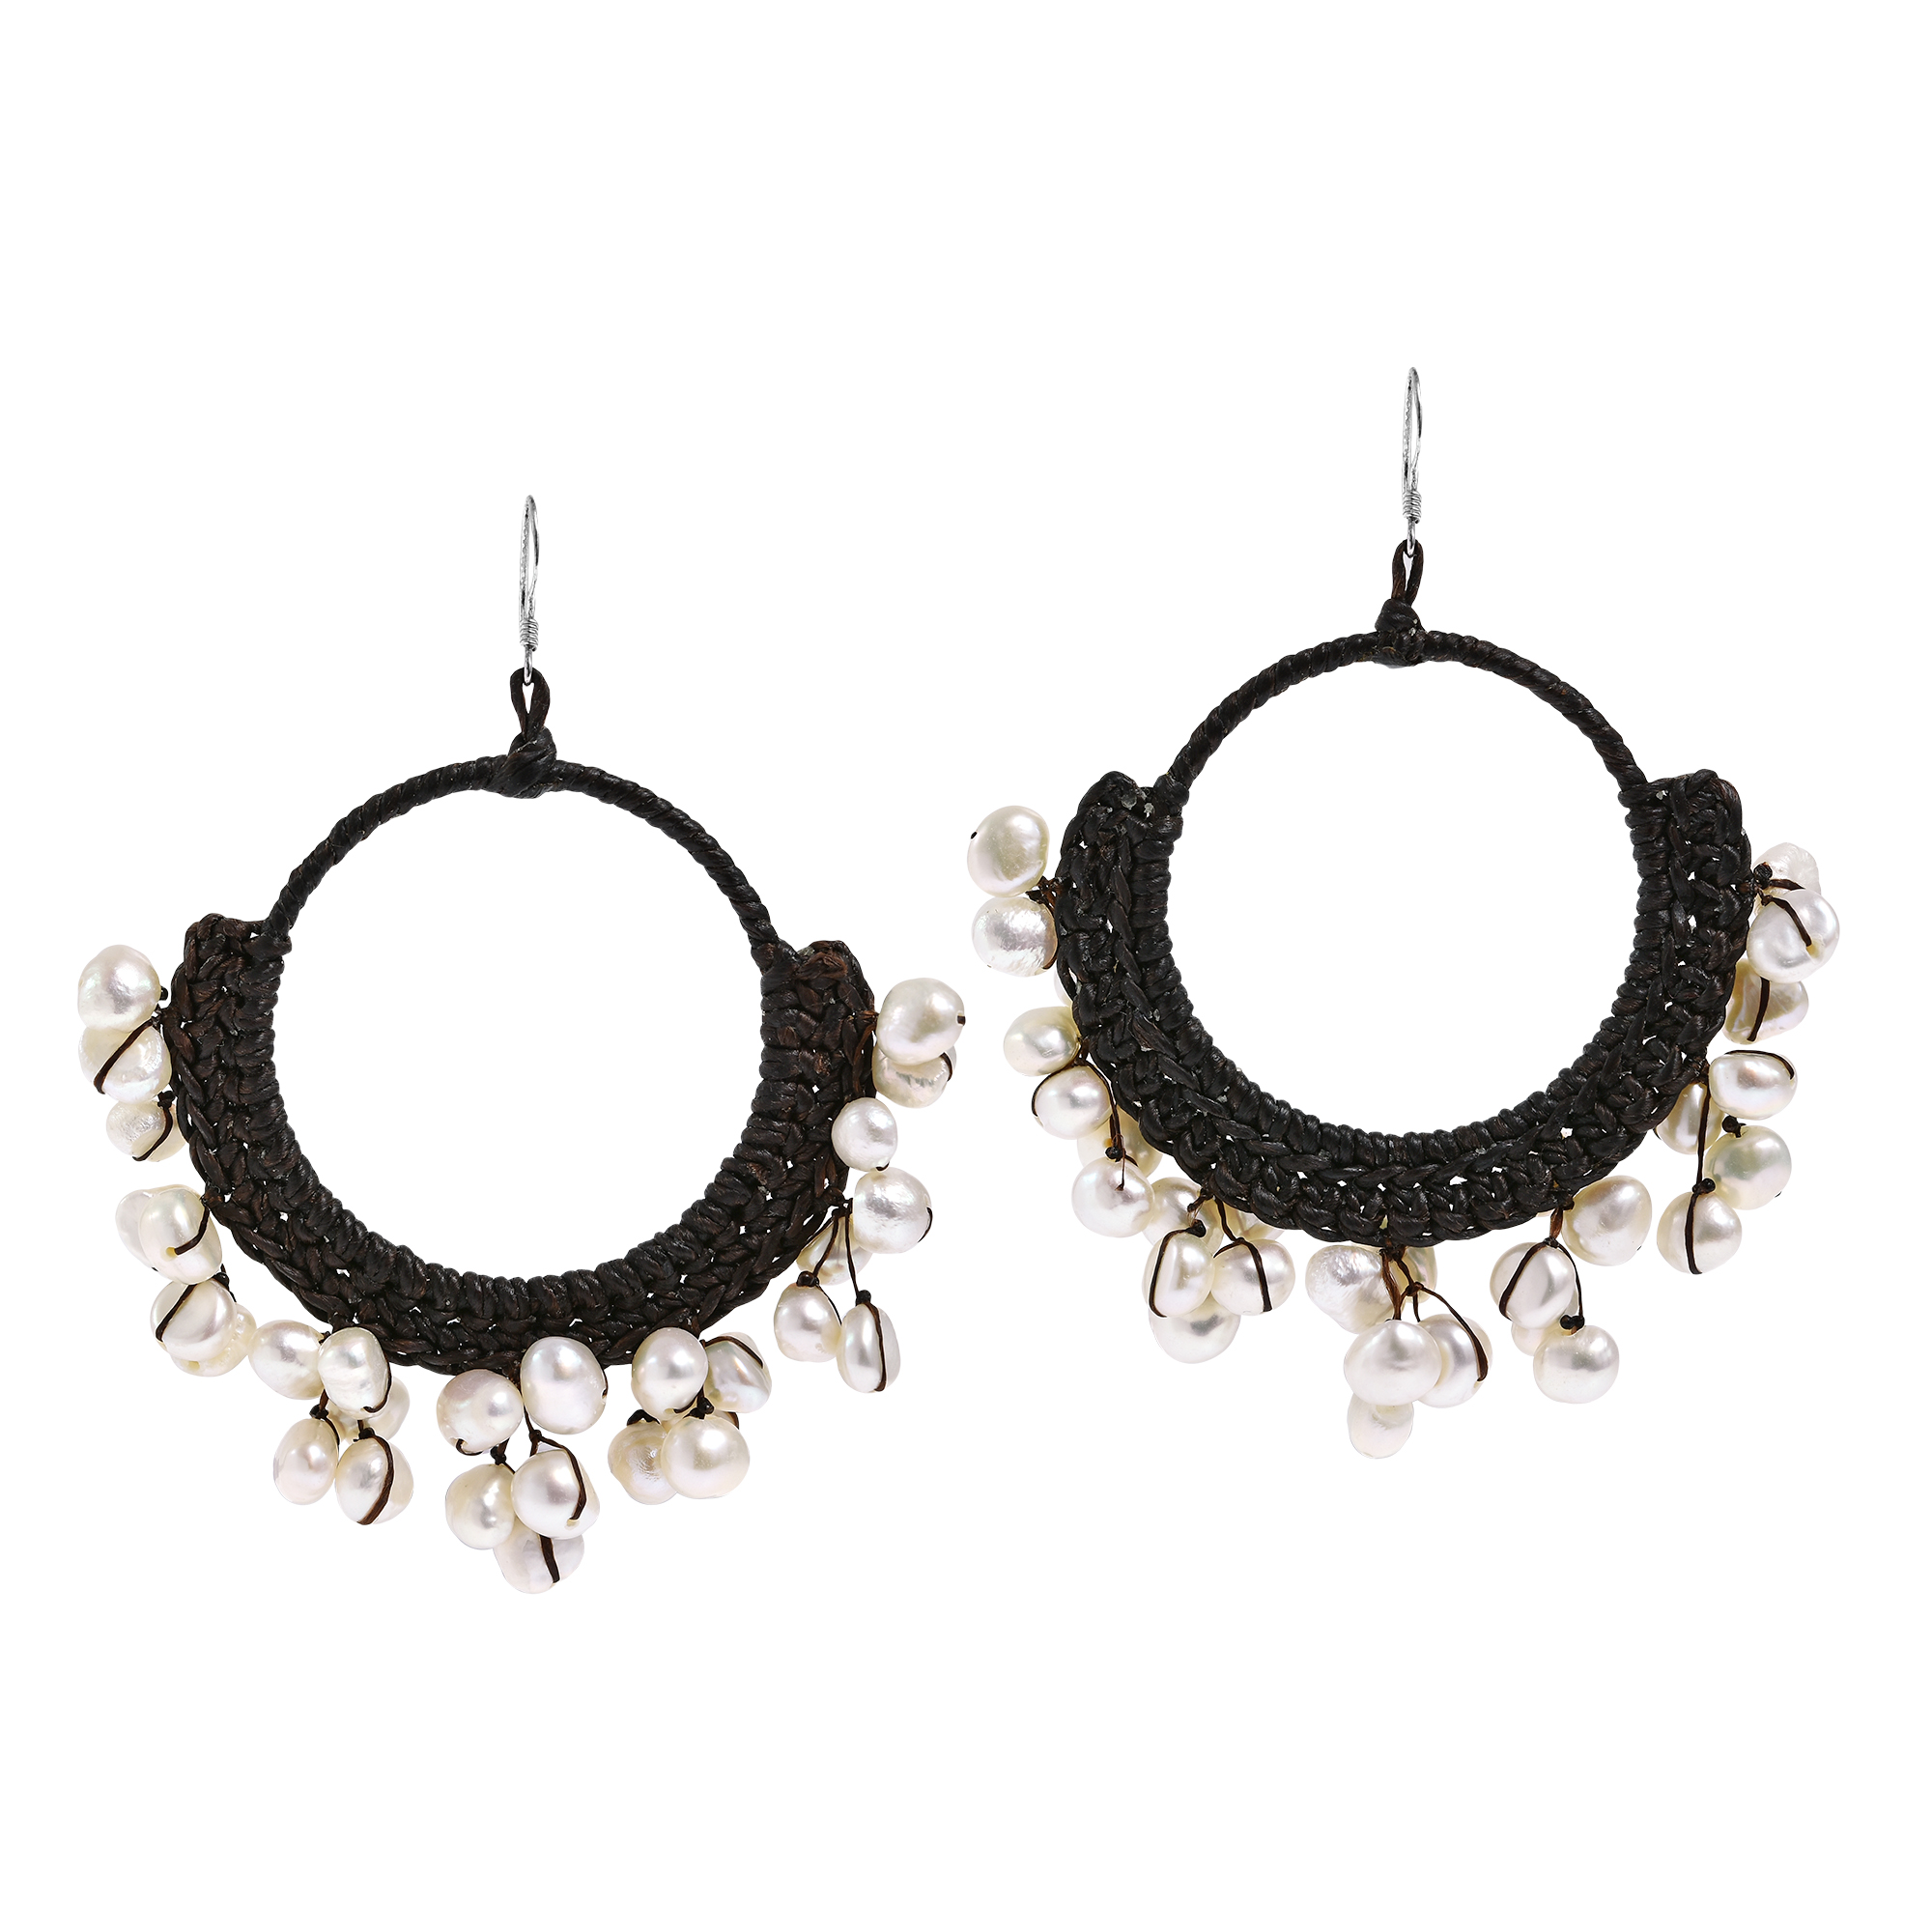 Freshwater white pearl chandelier hoop earrings aeravida dress with an elegant and earthy vibe with these earring featuring a cotton rope hoop accented with gemstones dangles on sterling silver hooks aloadofball Choice Image